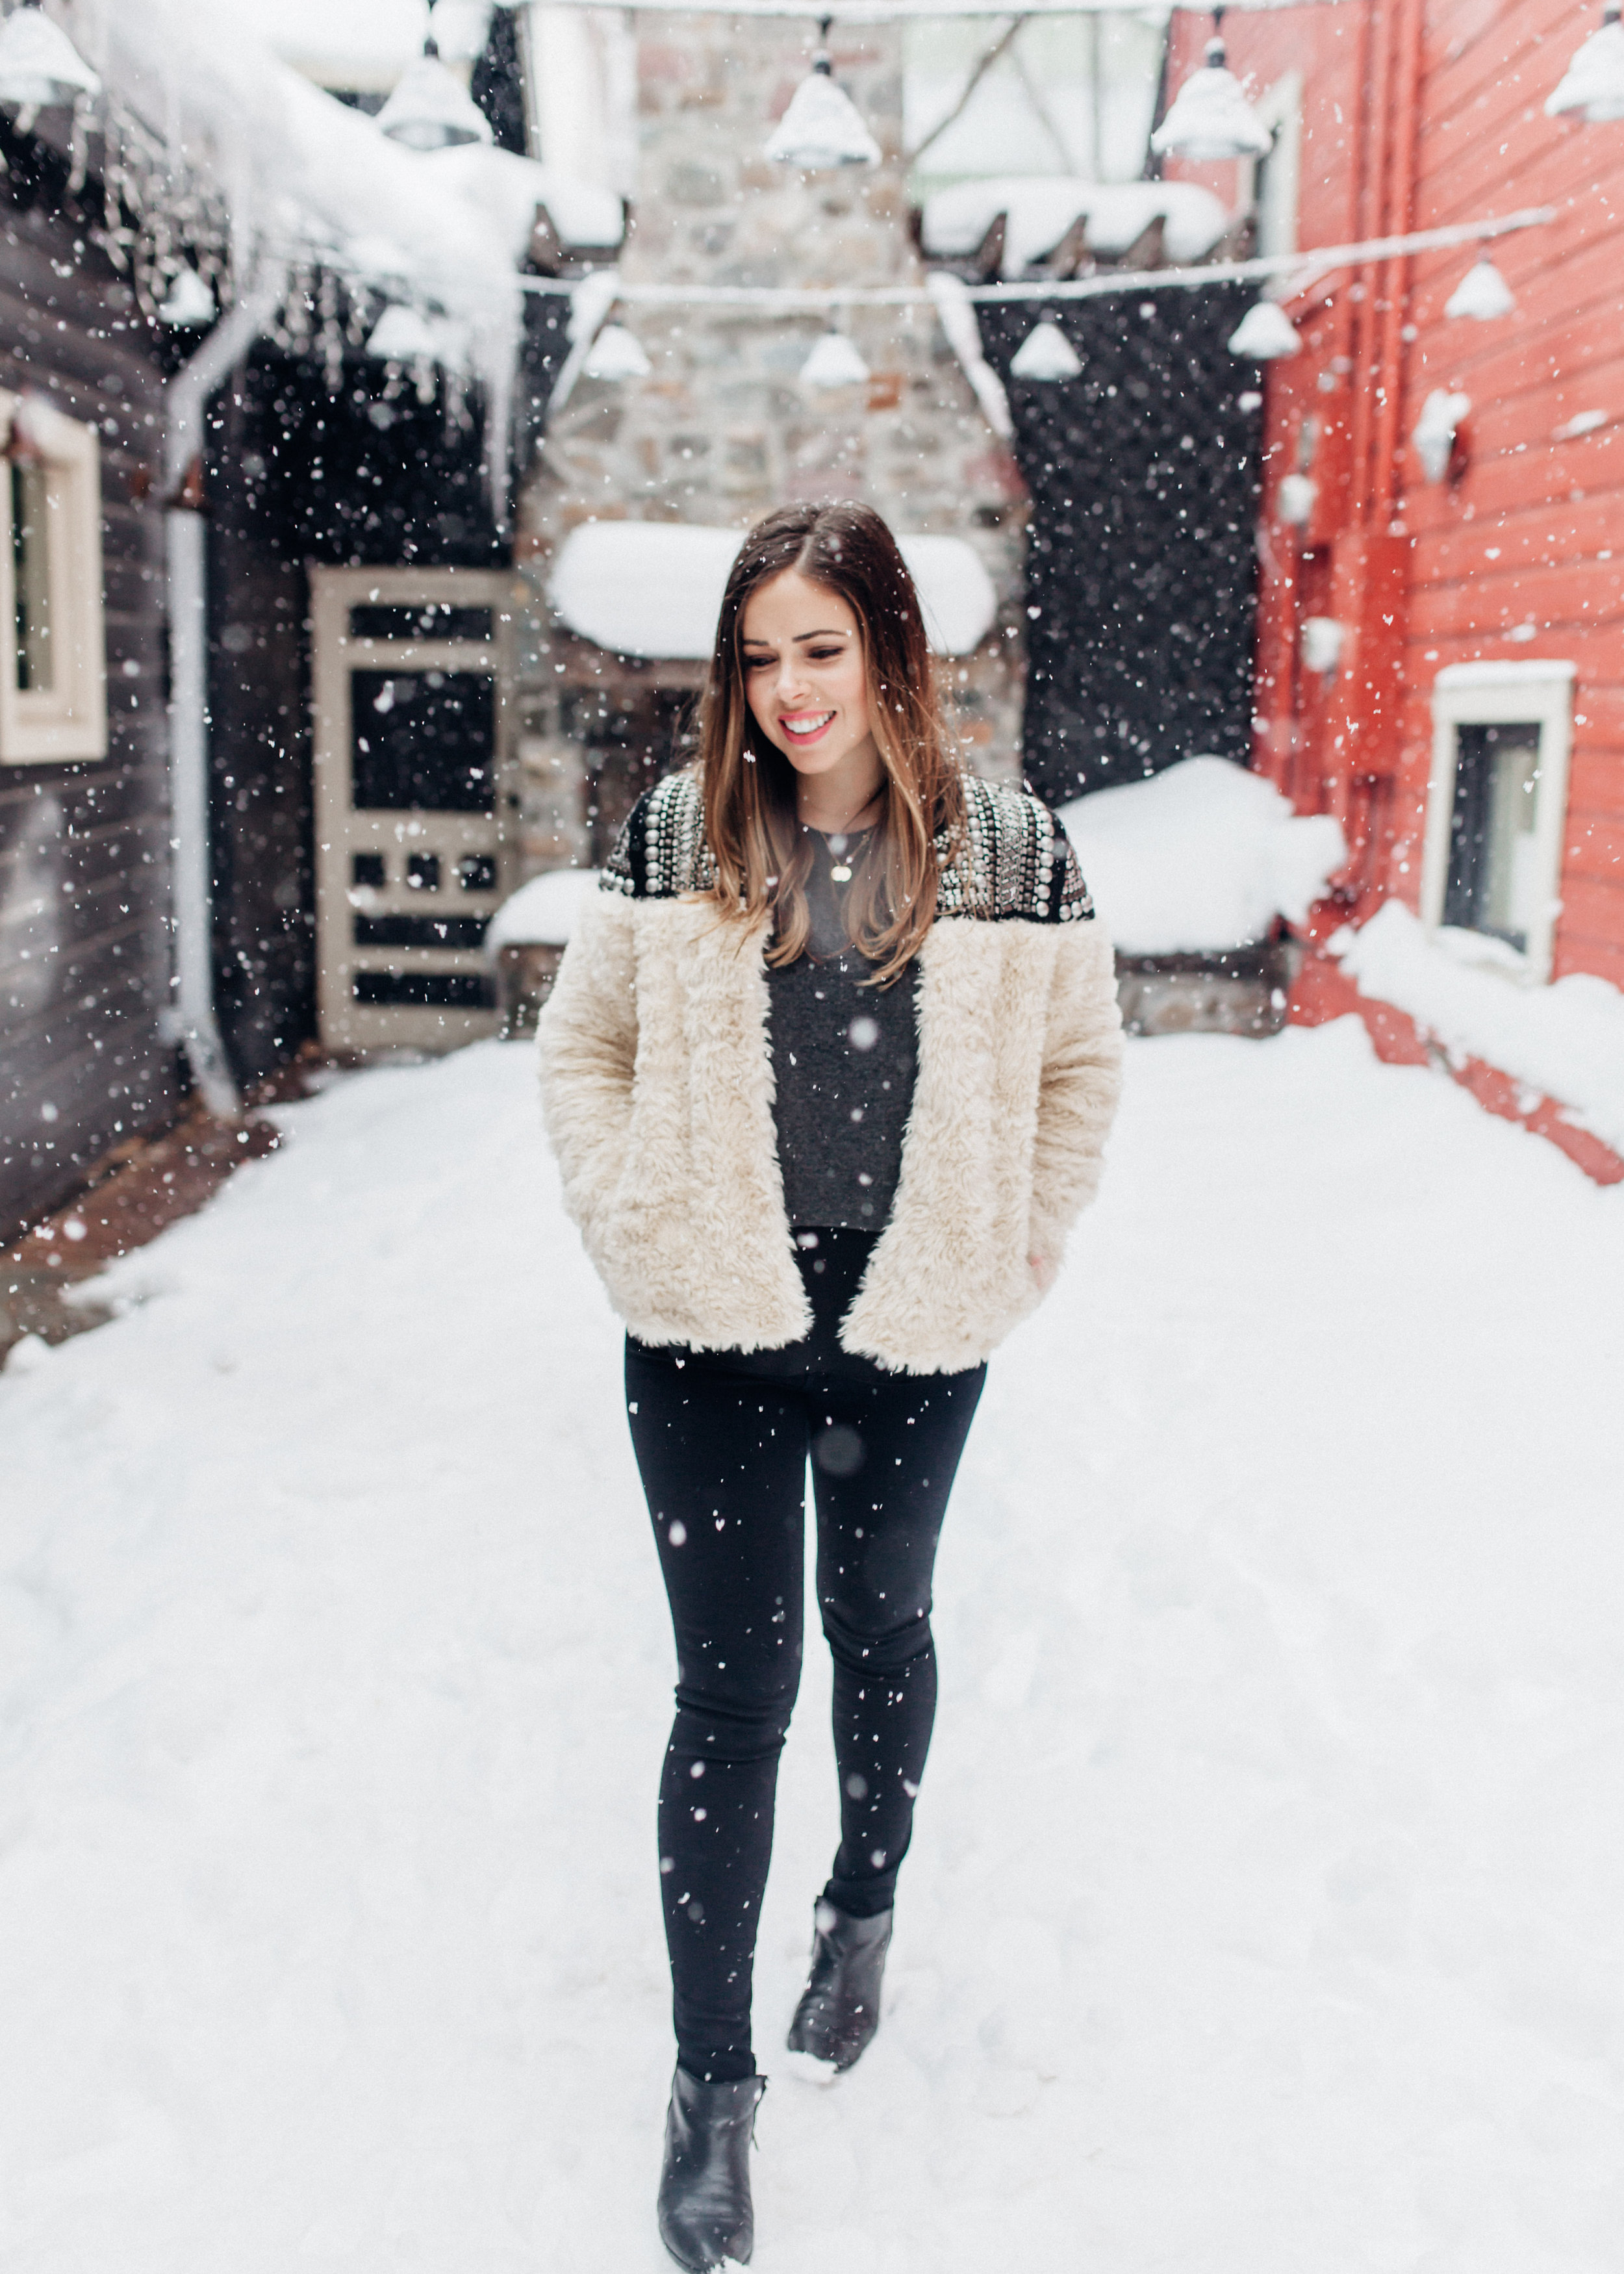 Snowy times at Sundance Film Festival / photo by http://www.anchoredimagephotography.com/